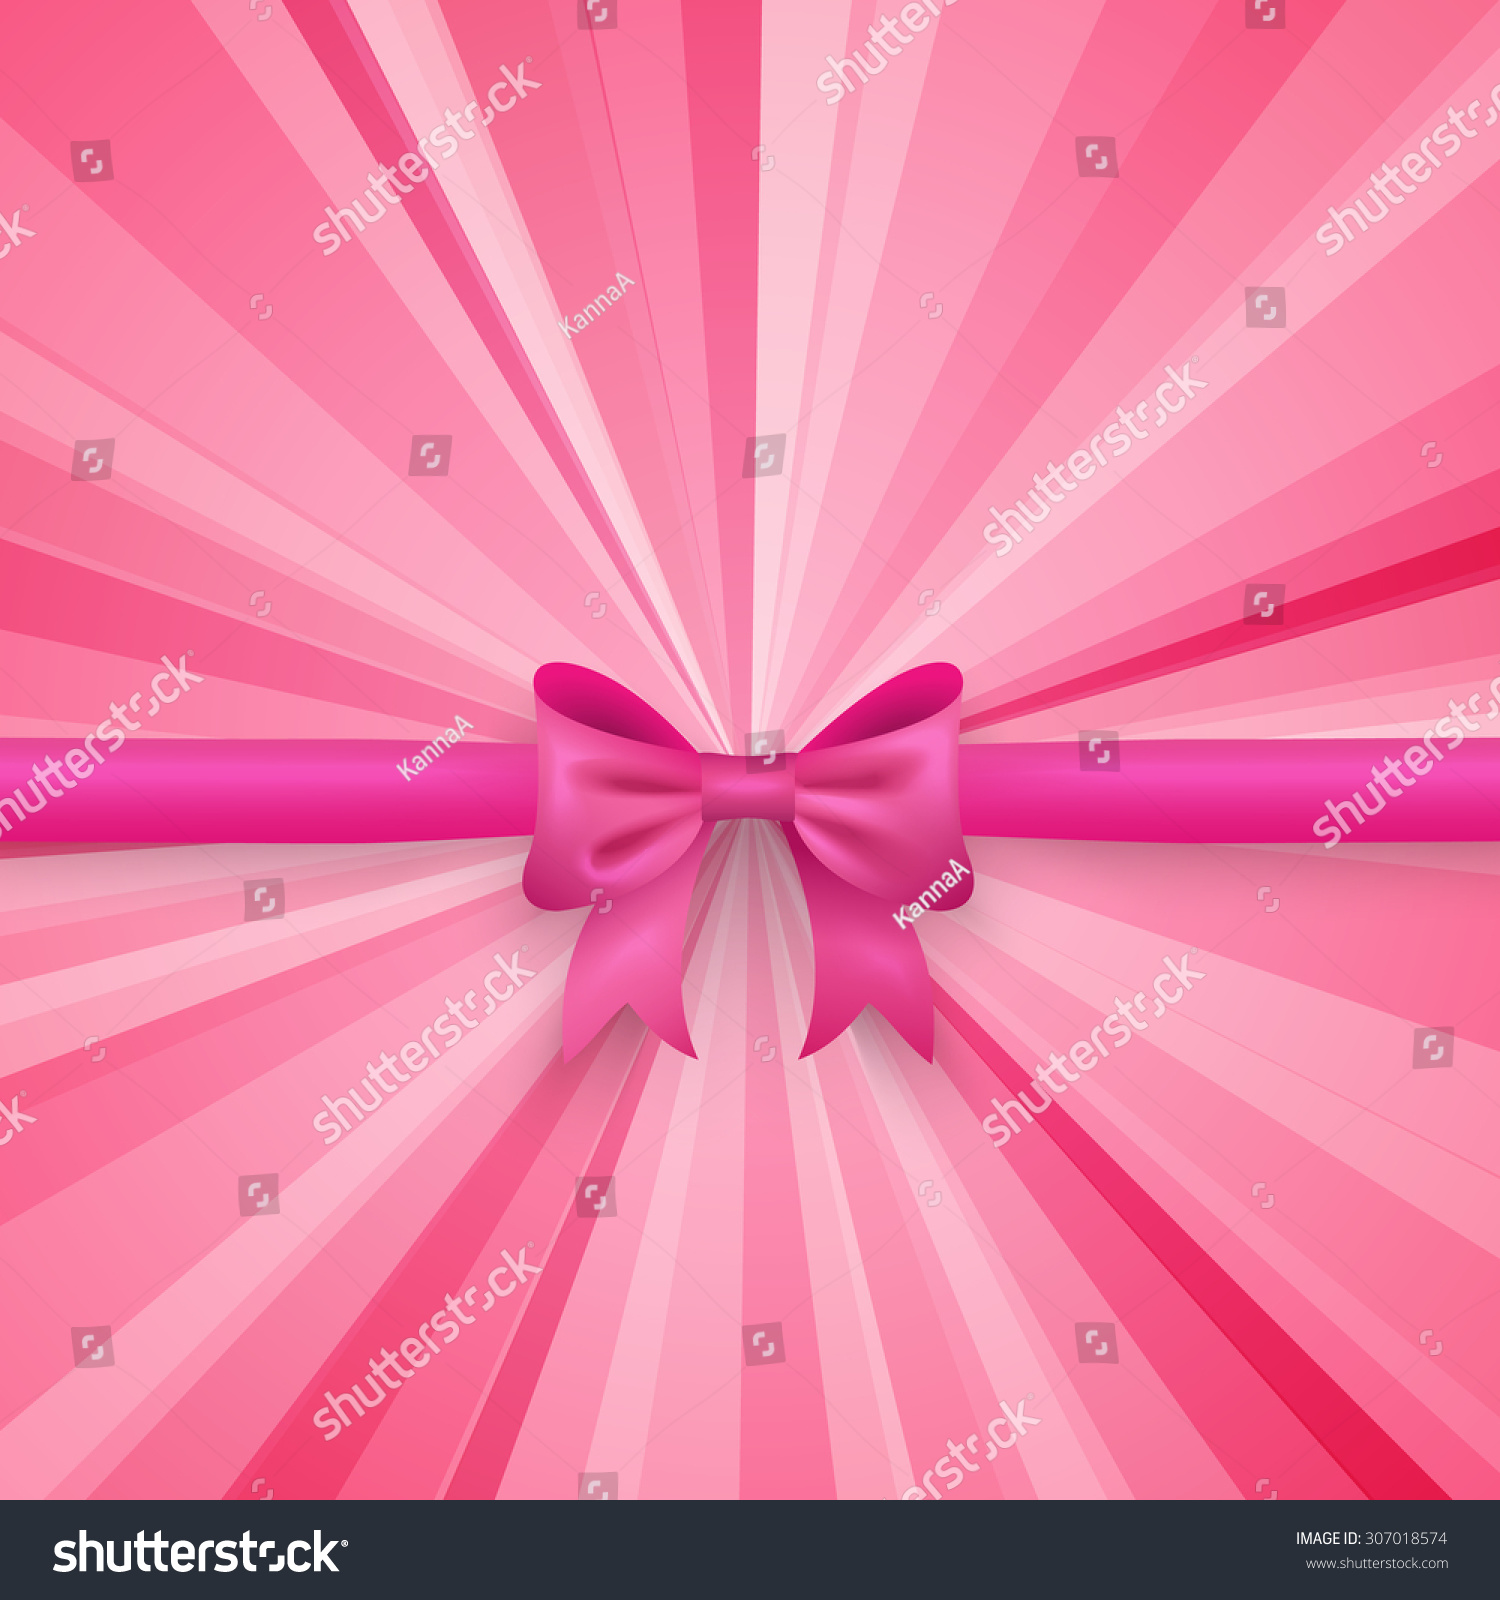 Romantic vector seamless background greeting card wallpaper vector art - Romantic Vector Pink Background With Cute Bow And Pattern Pretty Design Greeting Card Wallpaper